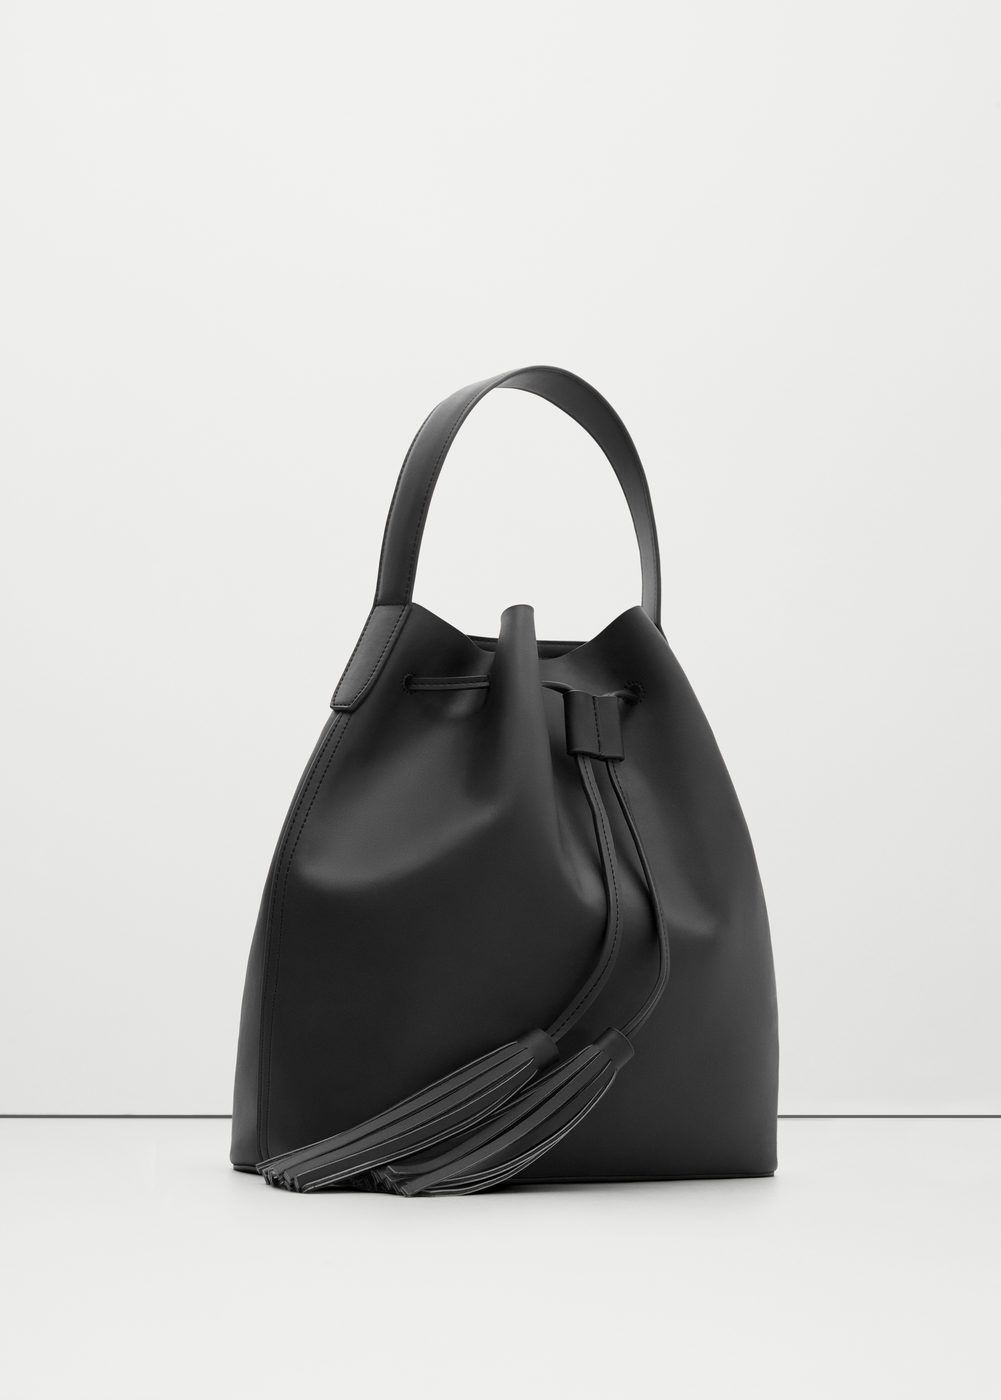 Tassel hobo bag - Bags for Woman | MANGO The Philippines | Zara ...